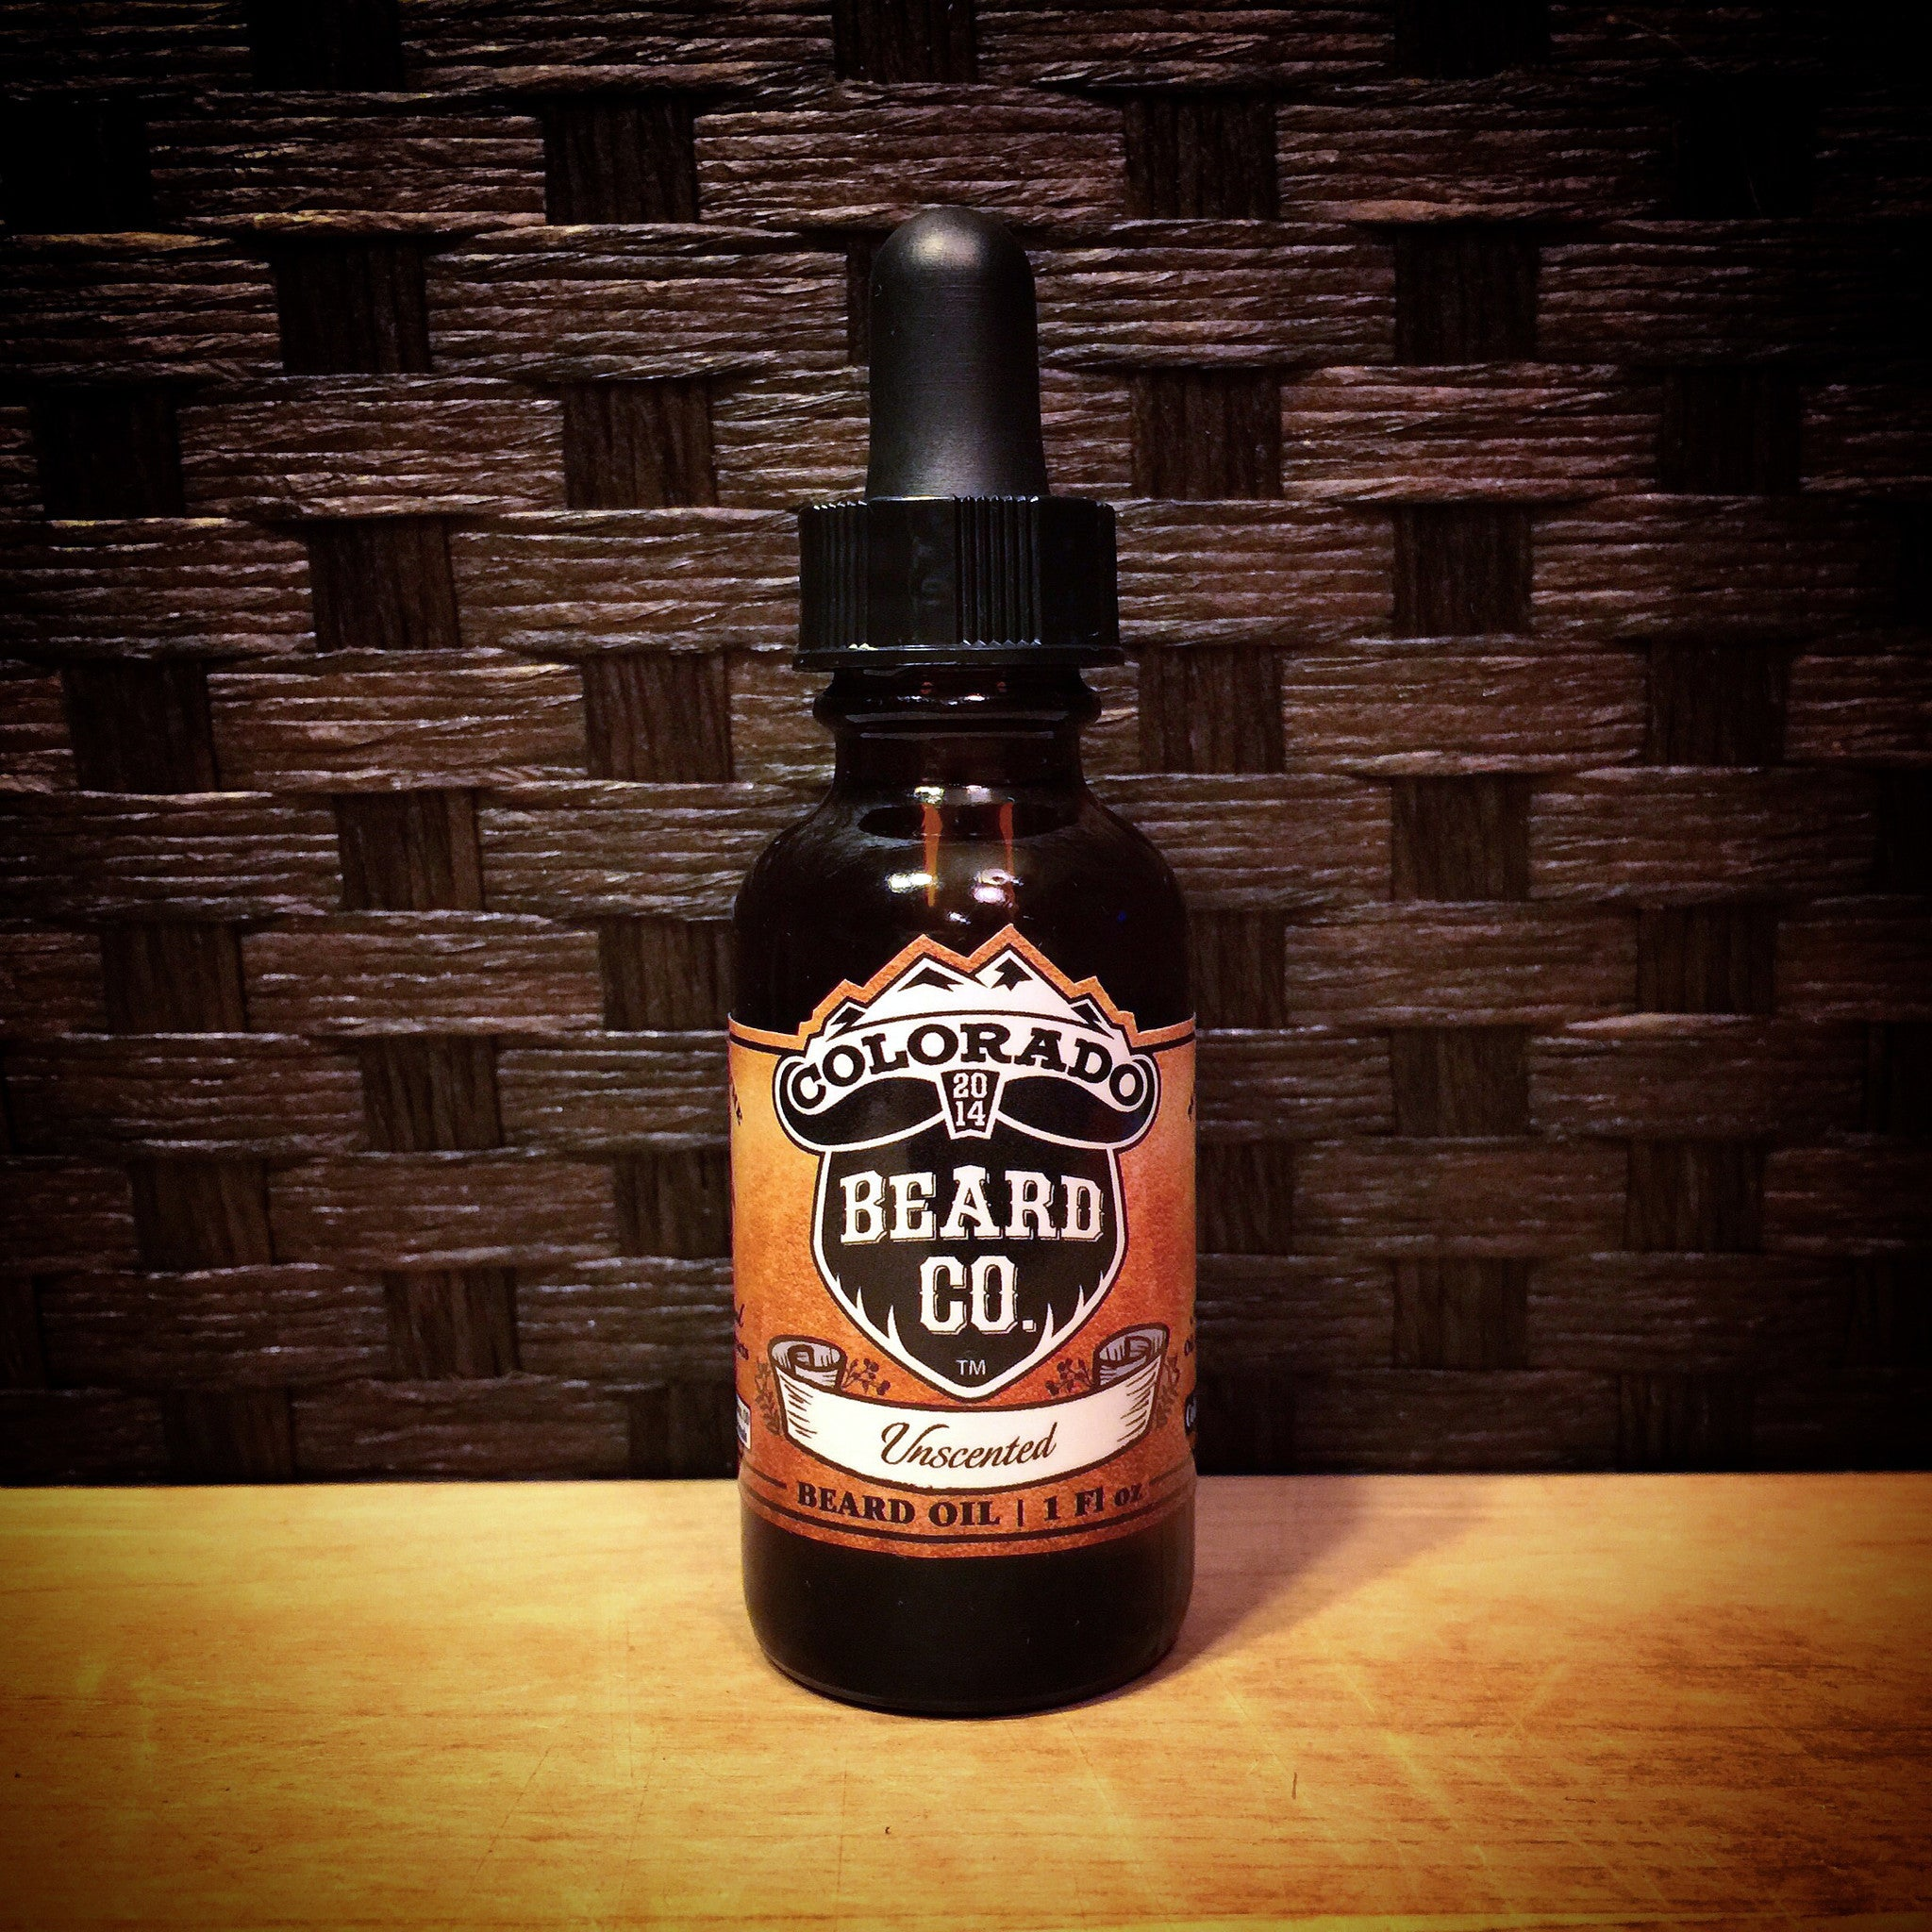 """Unscented"" Beard Oil Dropper Bottle - 1 oz"